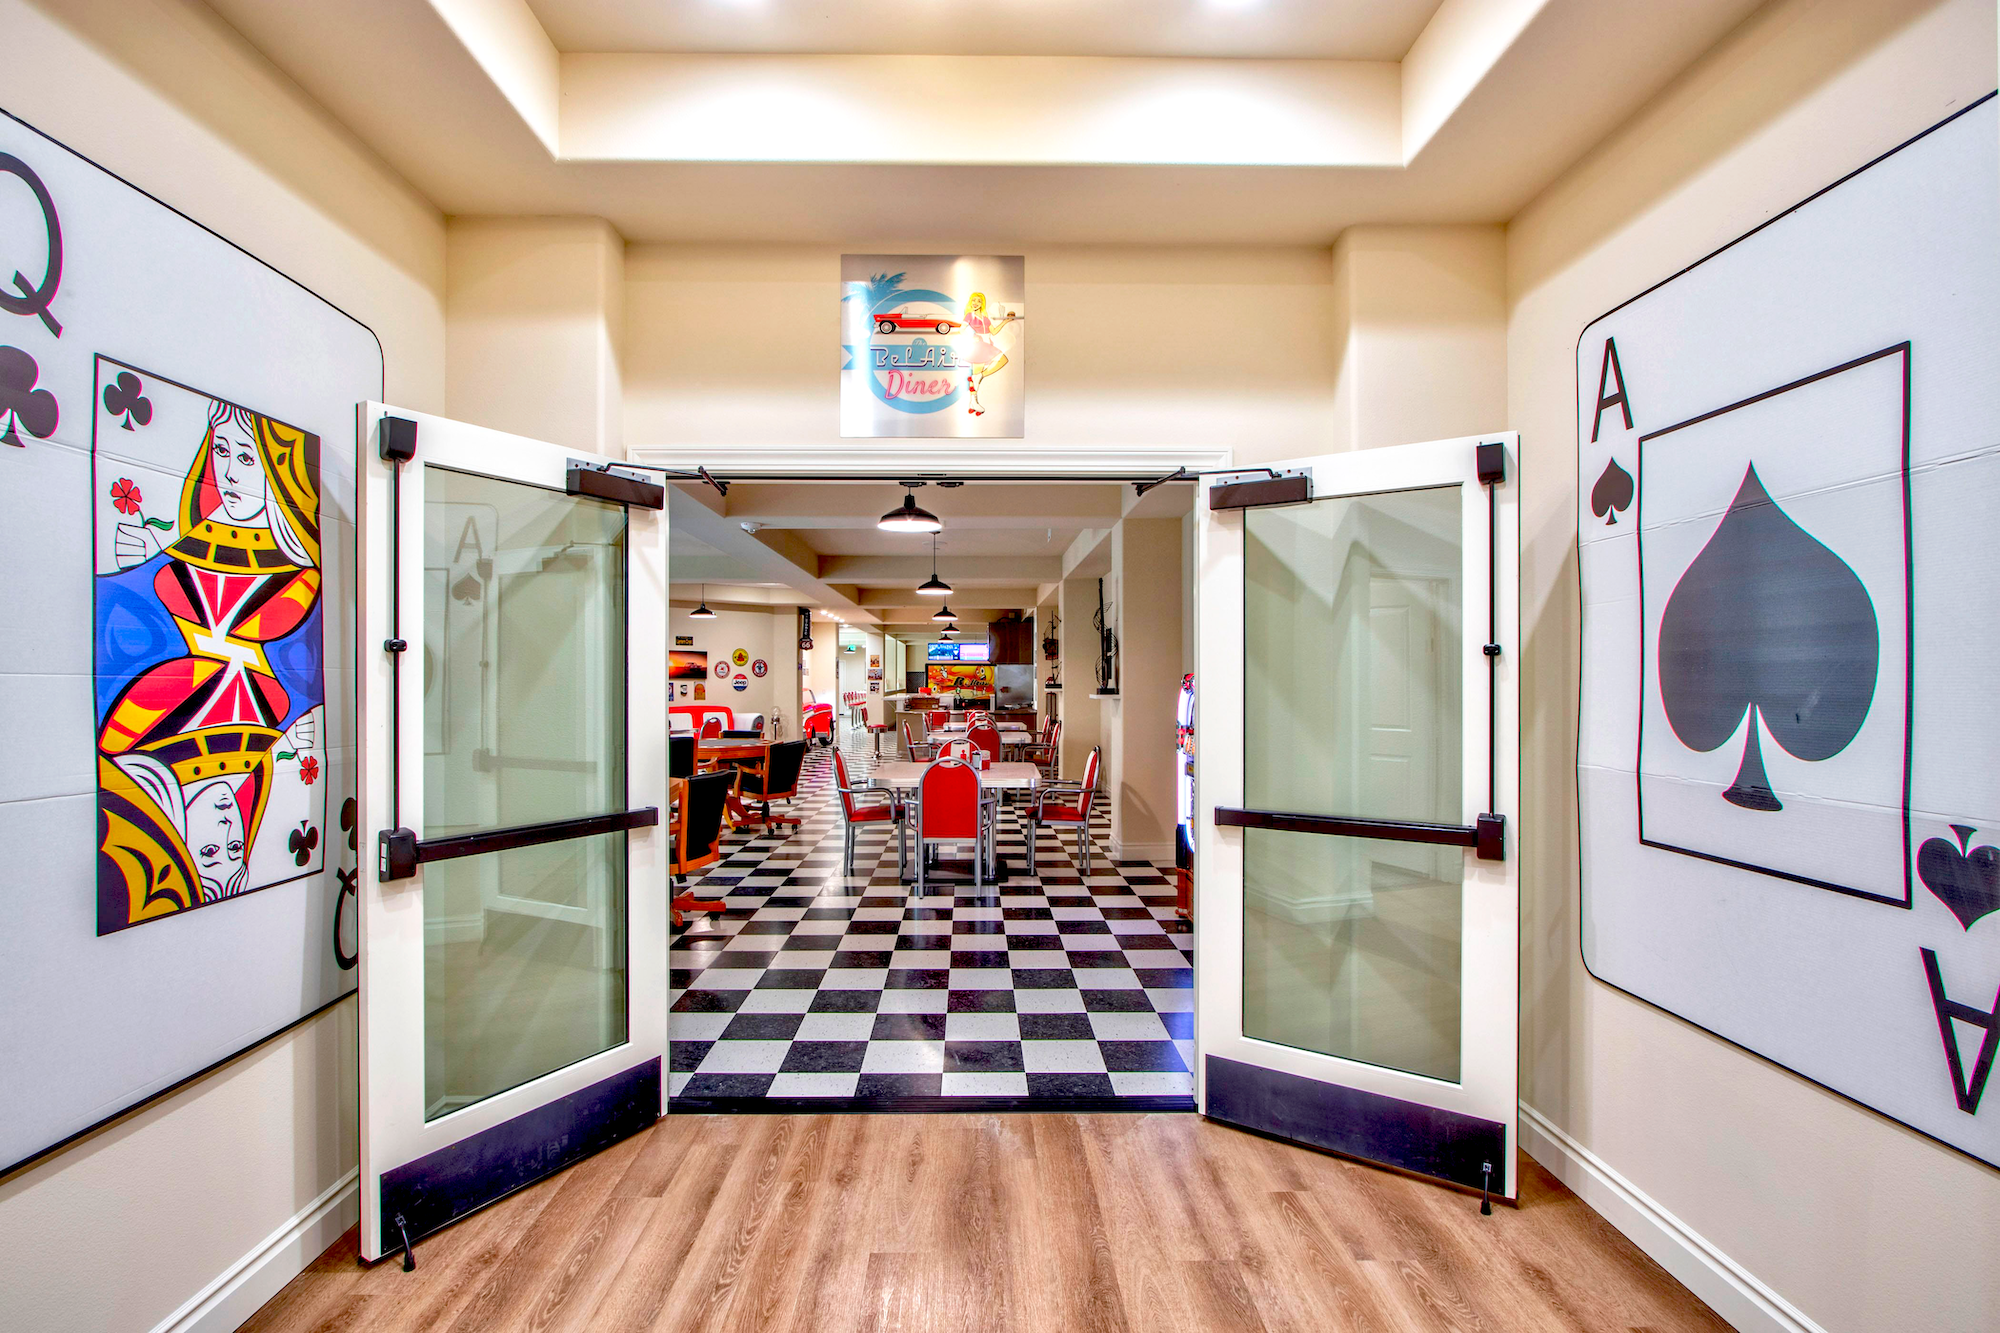 50s Inspired Diner Entrance. There are two oversized playing cards on the walls, looking into the dining area